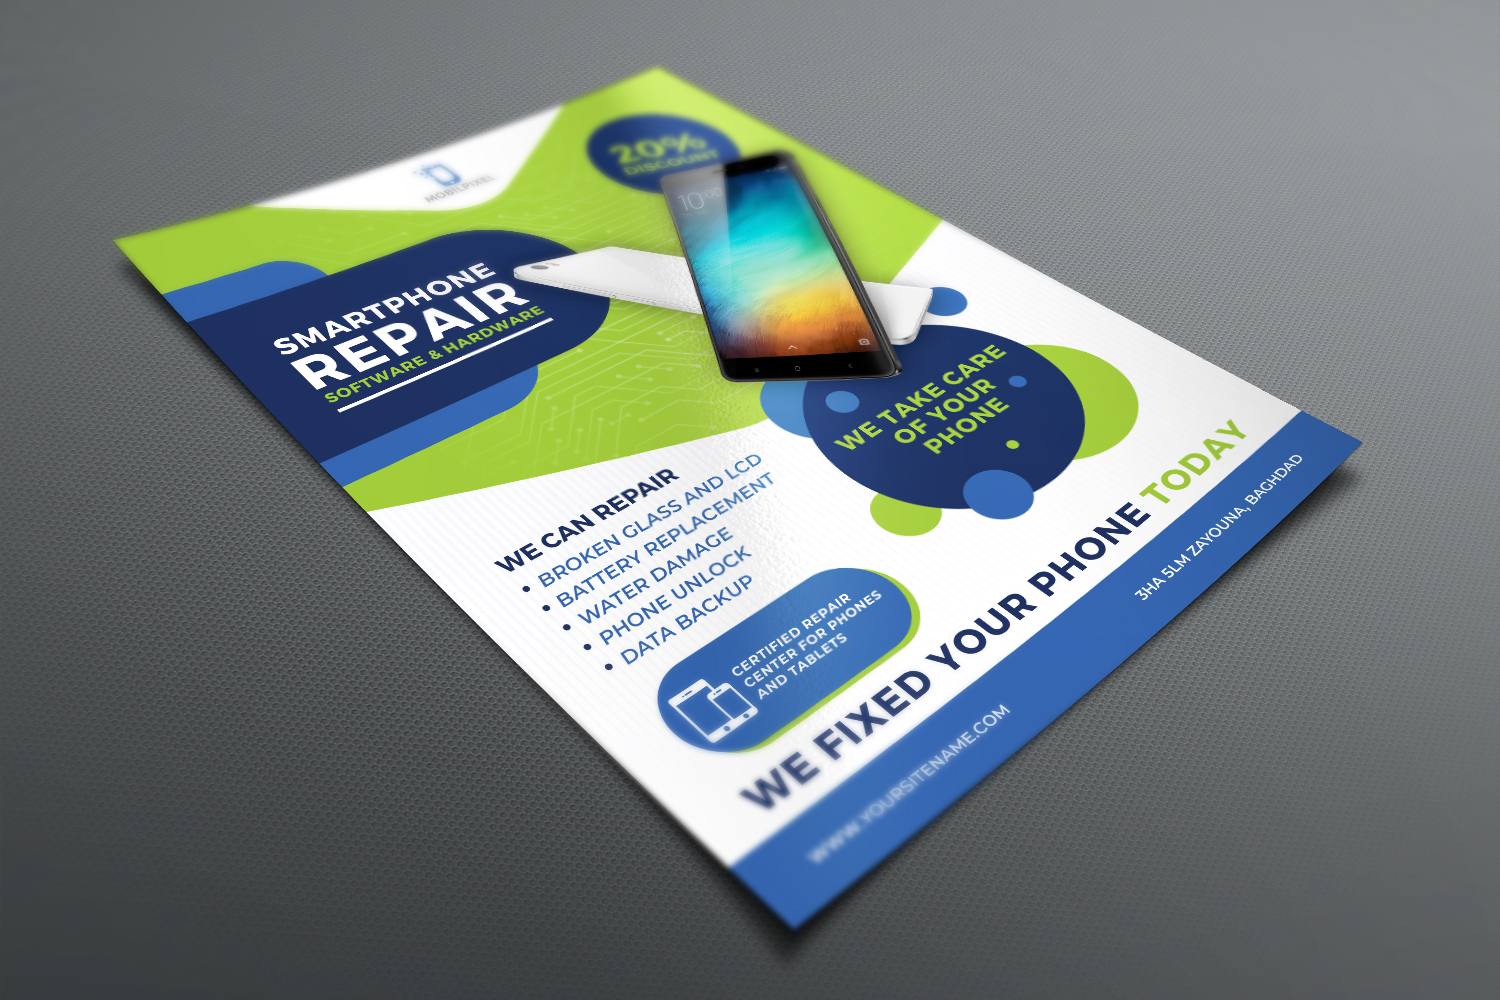 Smartphone Repair Service Flyer Template example image 3